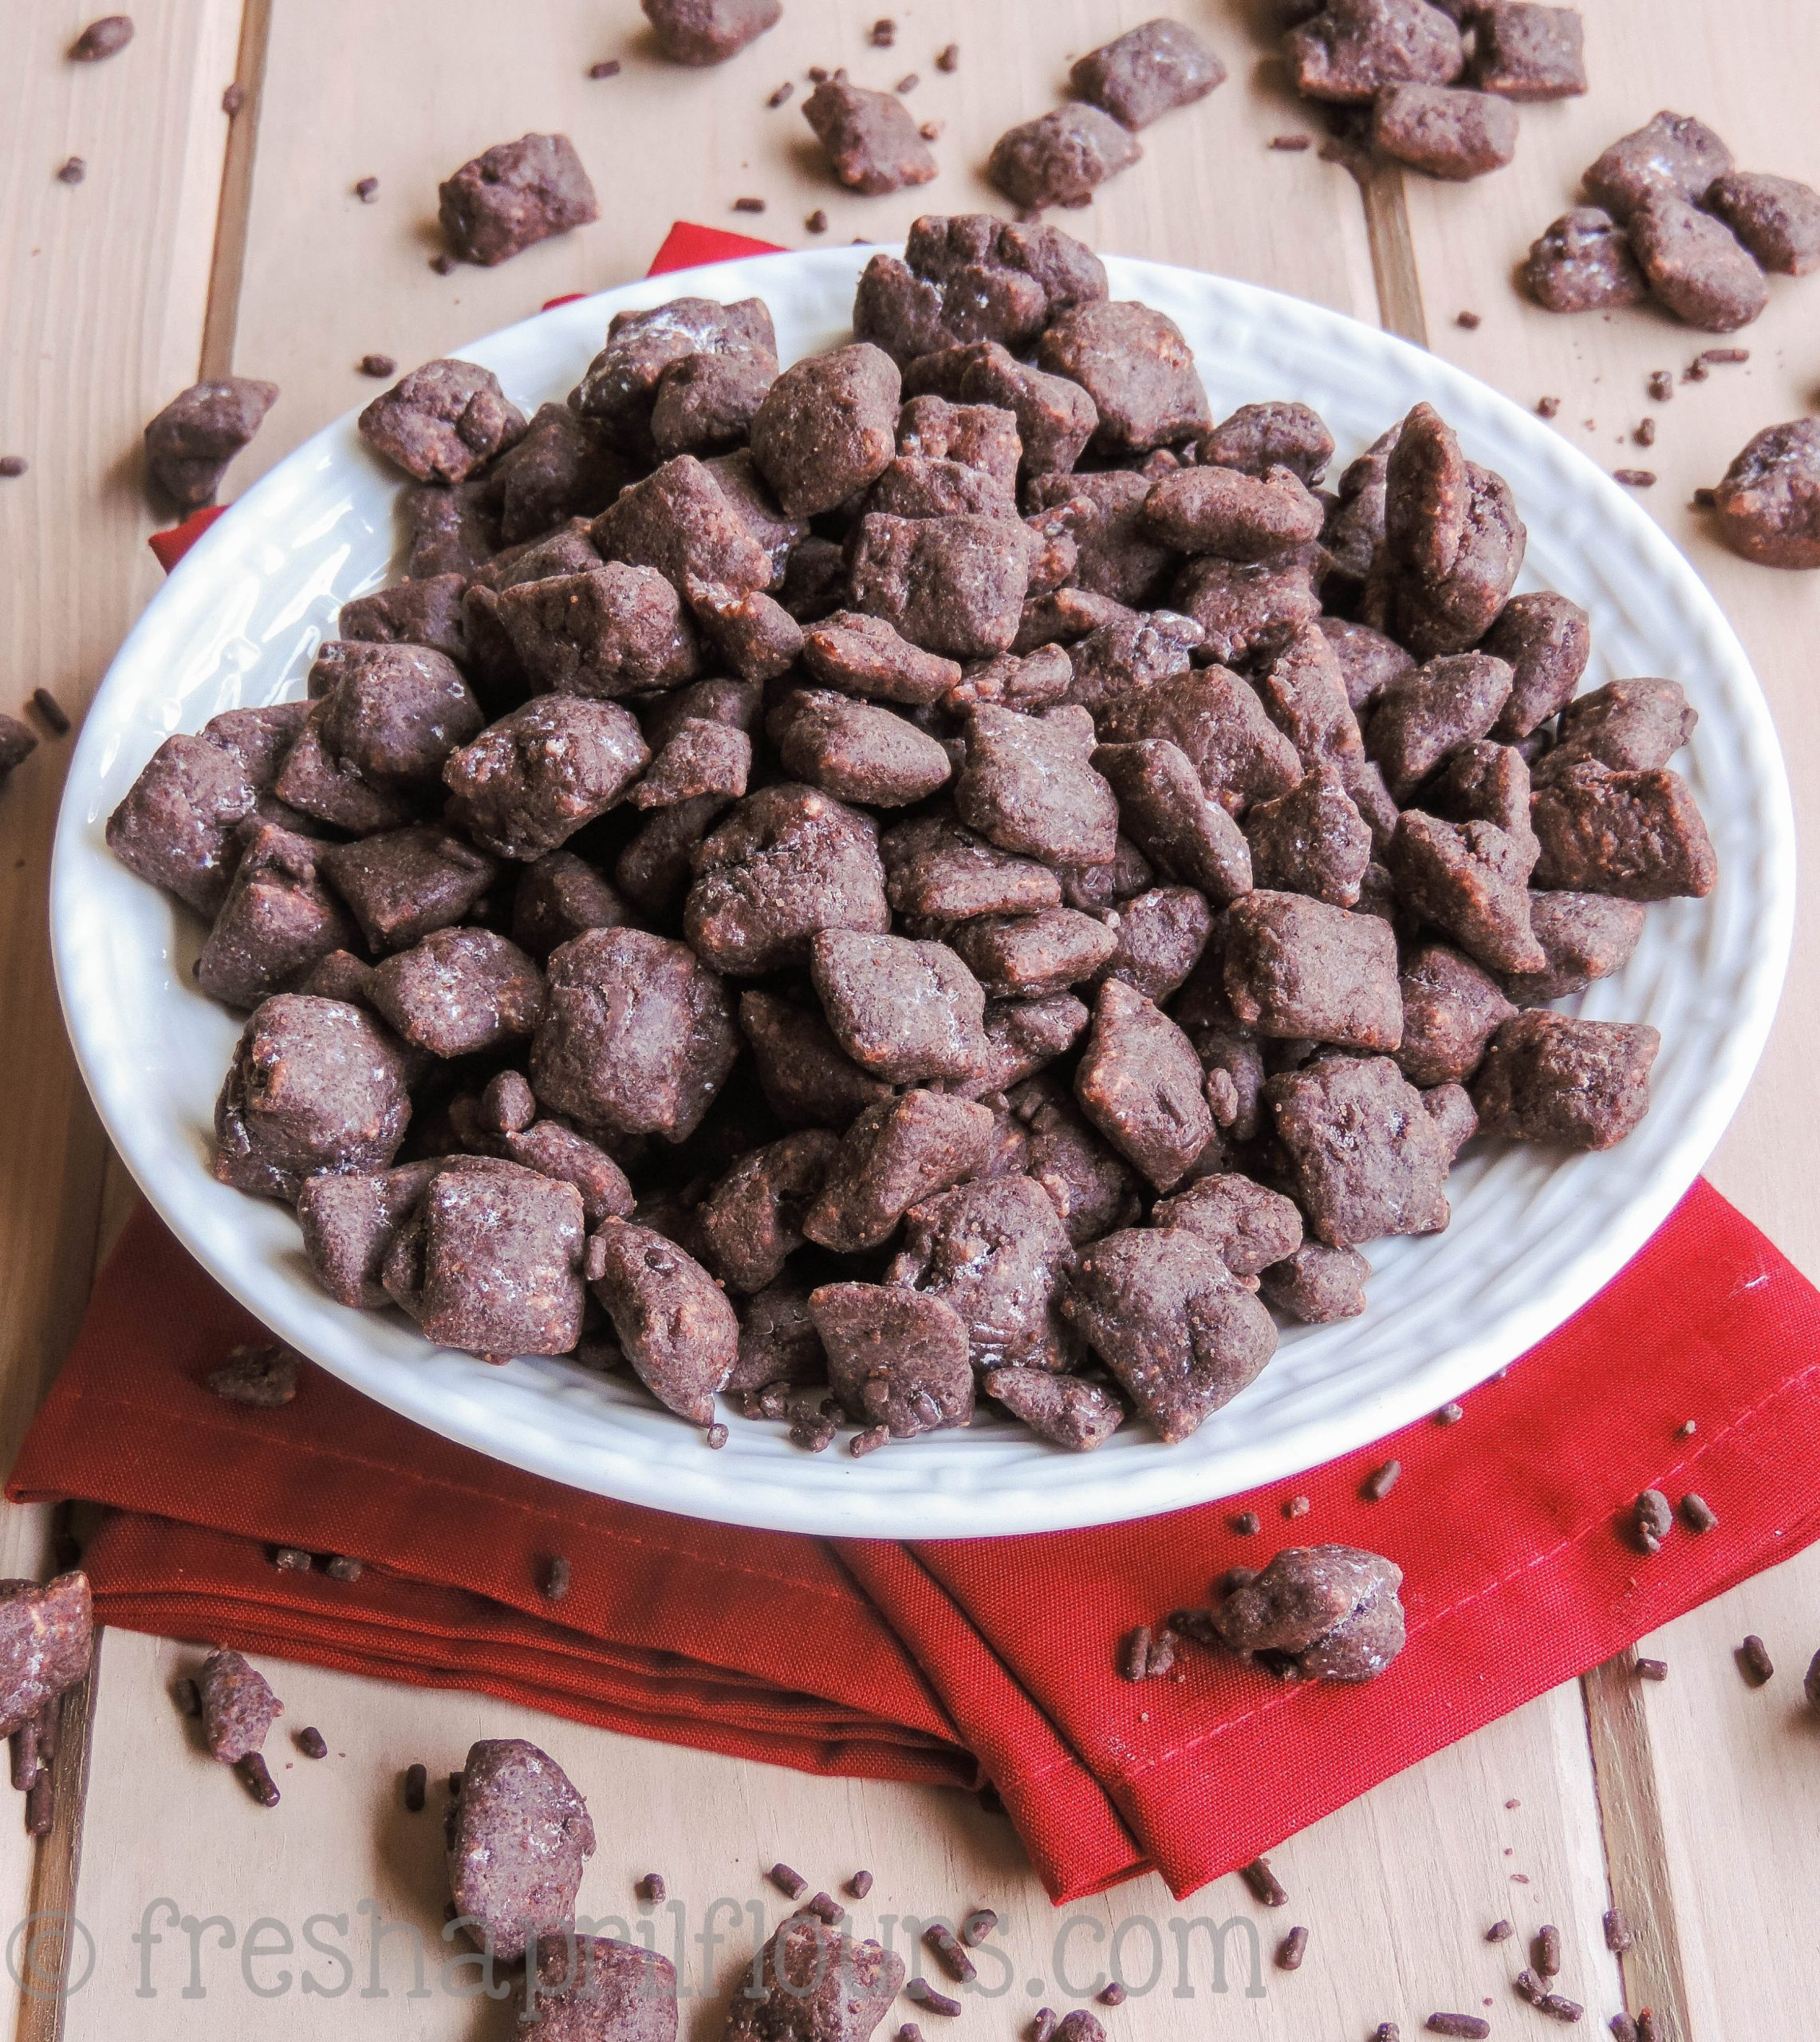 Brownie Batter Puppy Chow: A super chocolatey and slightly gooey take on classic puppy chow. Plus-- there's sprinkles!